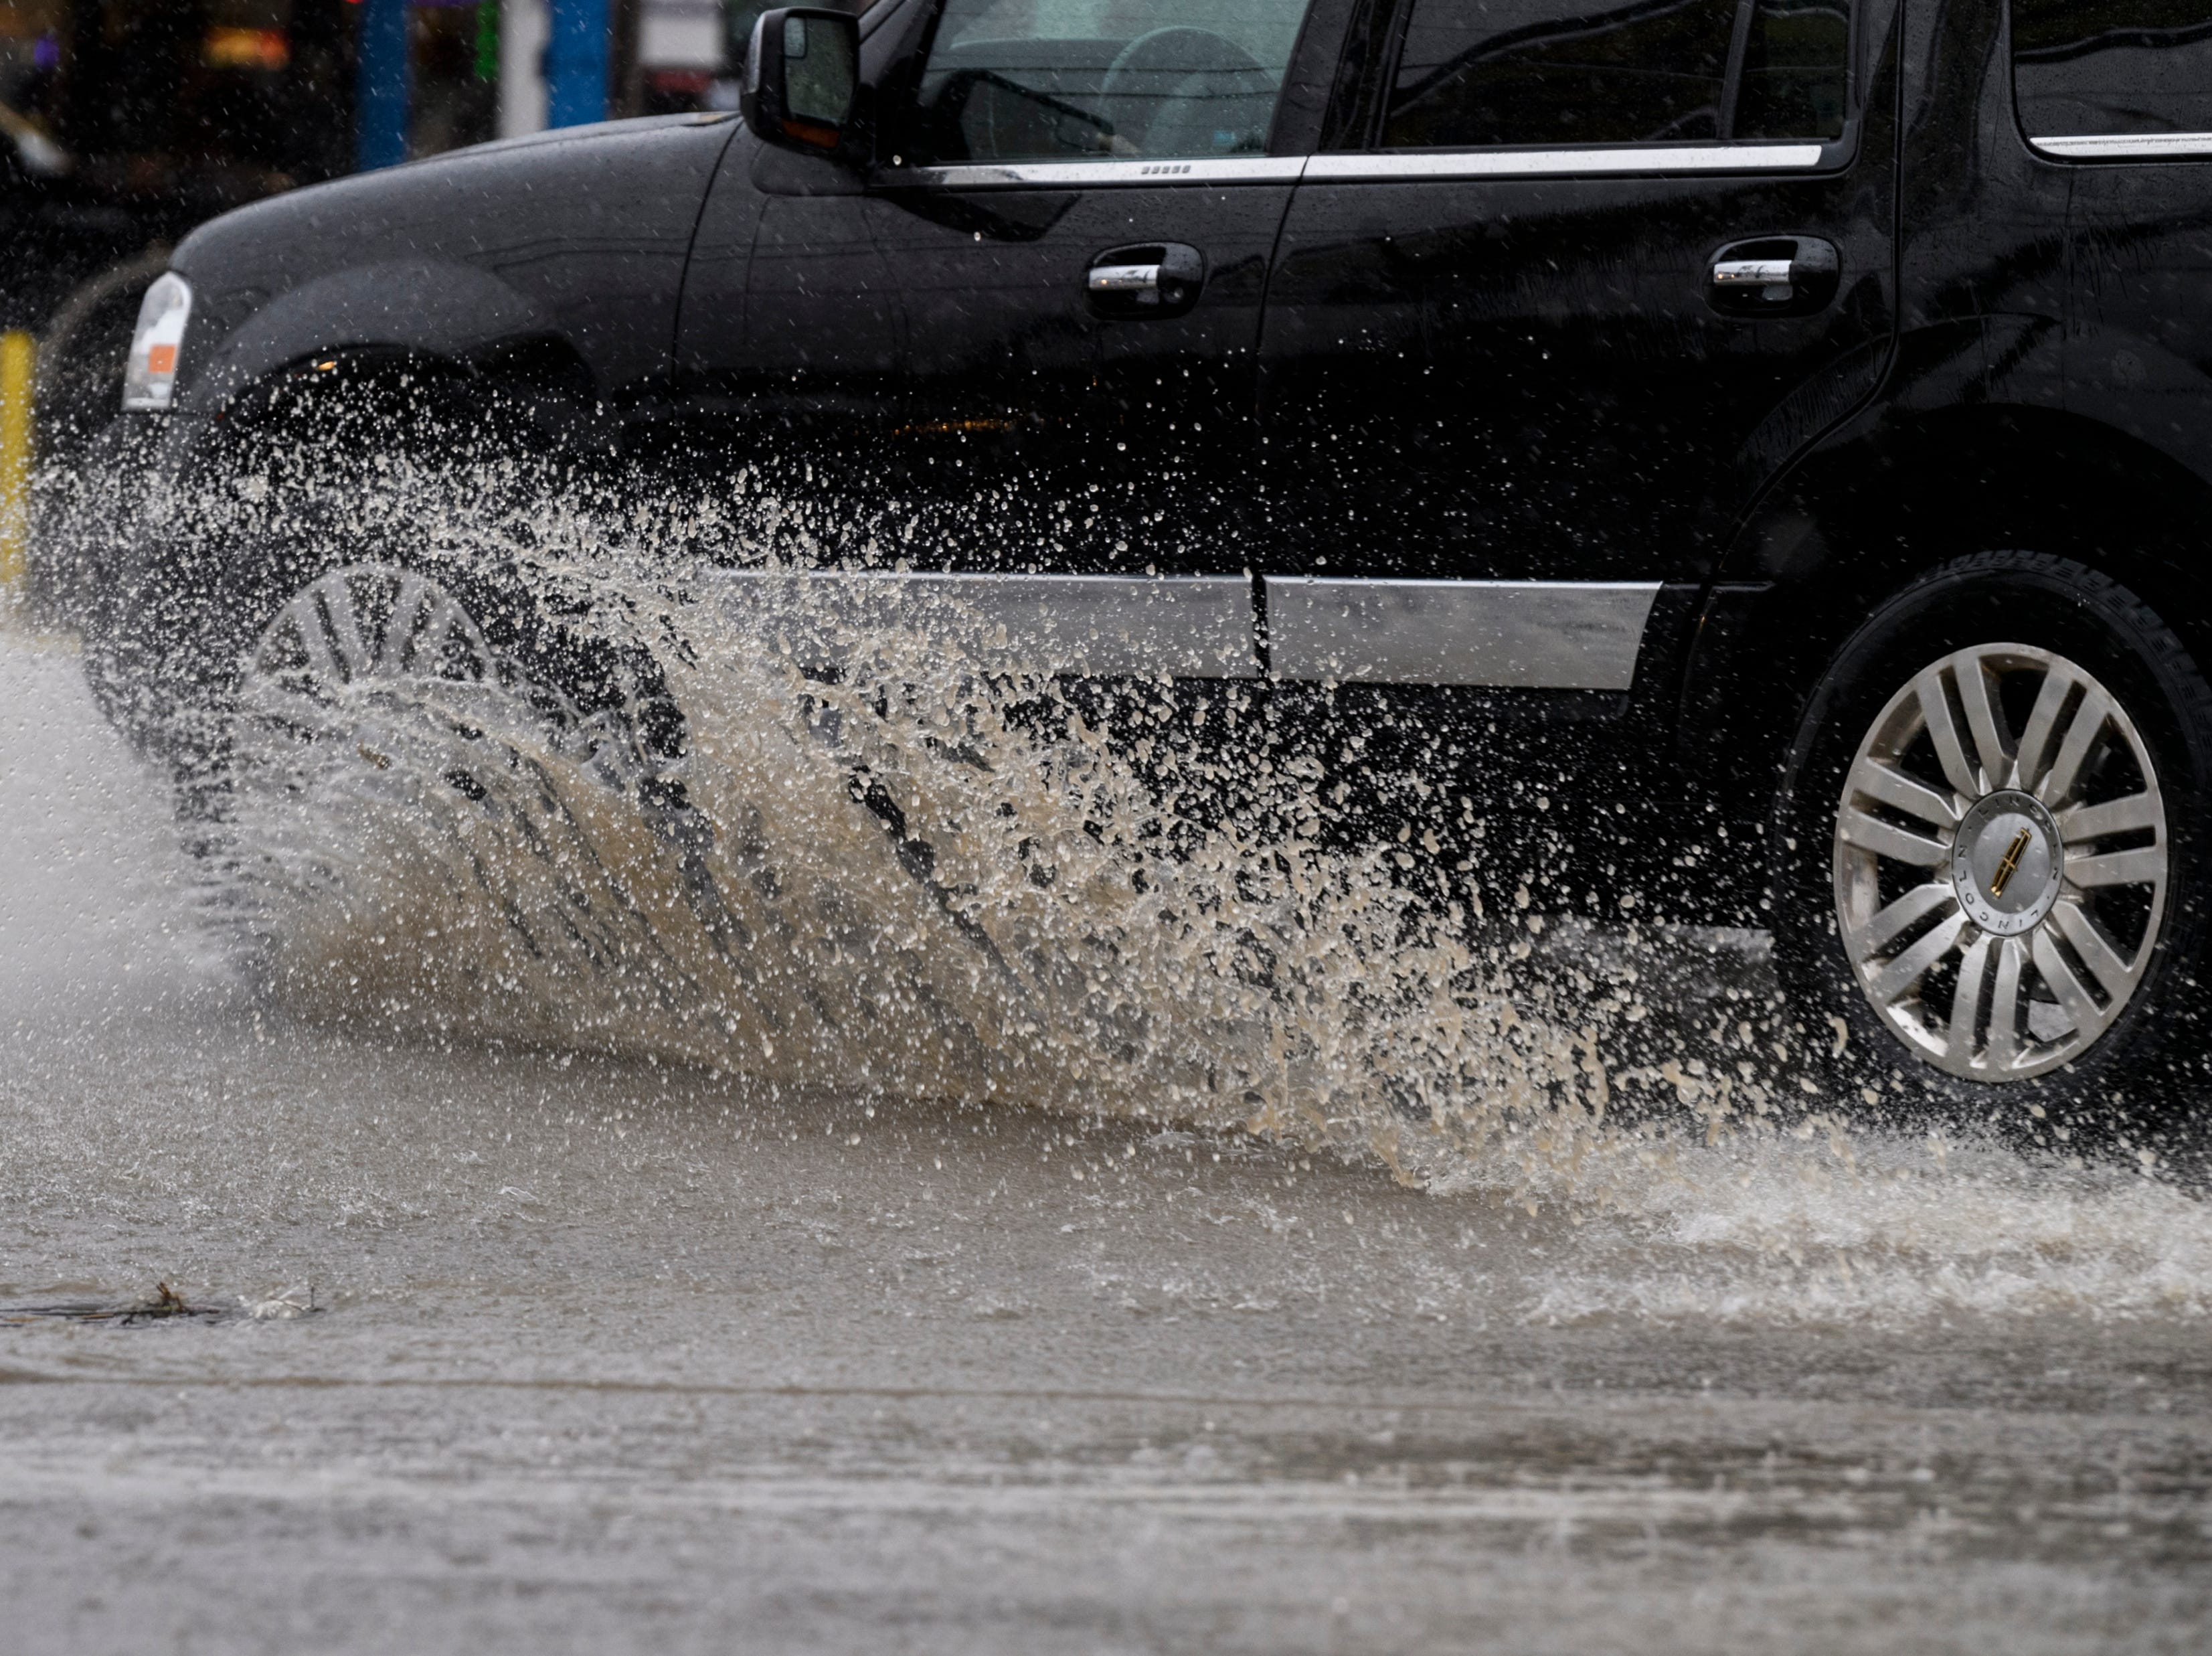 A vehicle drives through standing water at the intersection of North Tekoppel Avenue and Upper Mount Vernon Road on Evansville's west side as heavy rain hit the area, Thursday morning, Feb. 7, 2019.